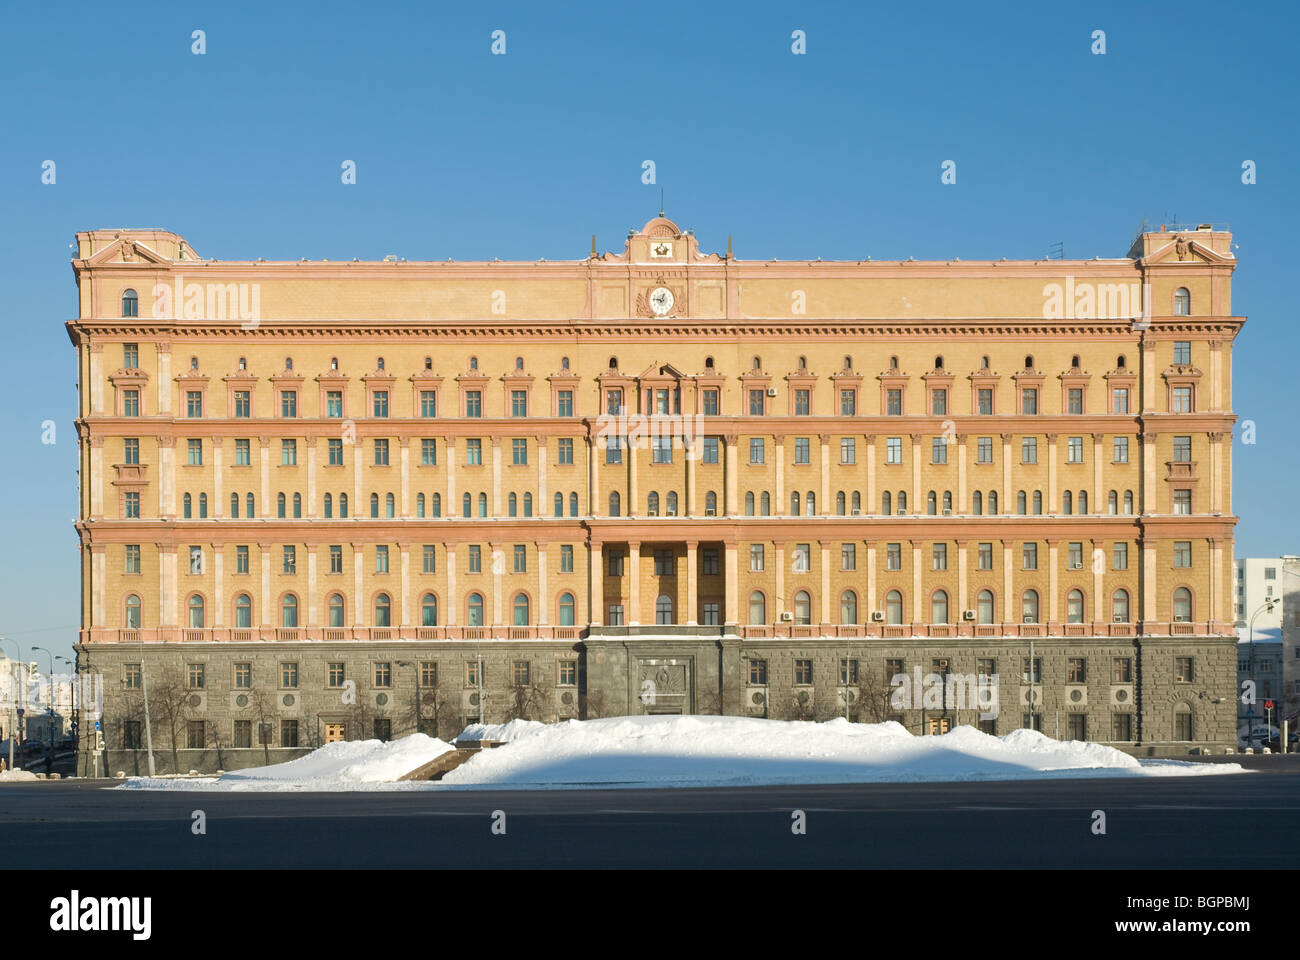 Building of the Russian Federal Security Service (FSB, old Soviet KGB) at Lubyanka Square, Moscow. - Stock Image